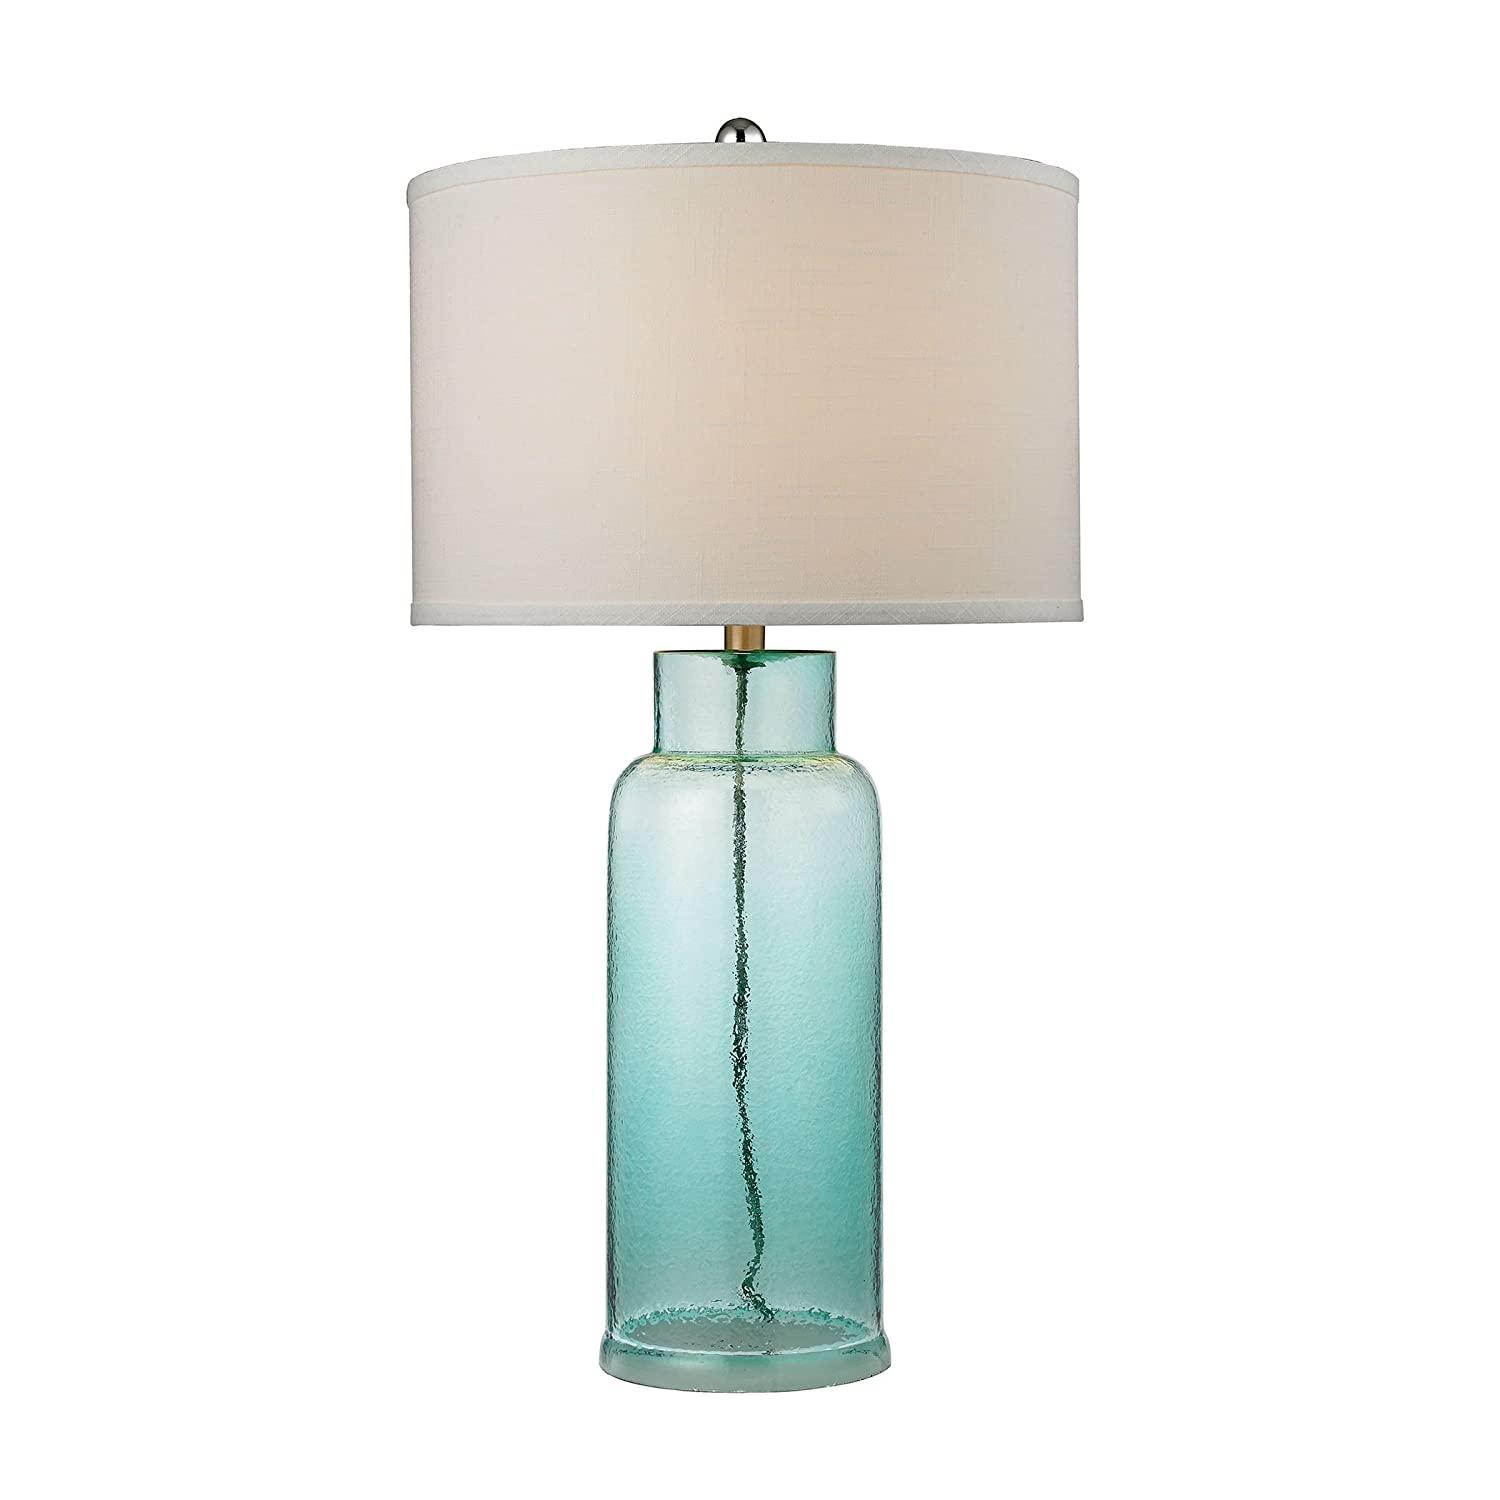 Amazon dimond lighting seafoam glass bottle table lamp home amazon dimond lighting seafoam glass bottle table lamp home improvement aloadofball Gallery